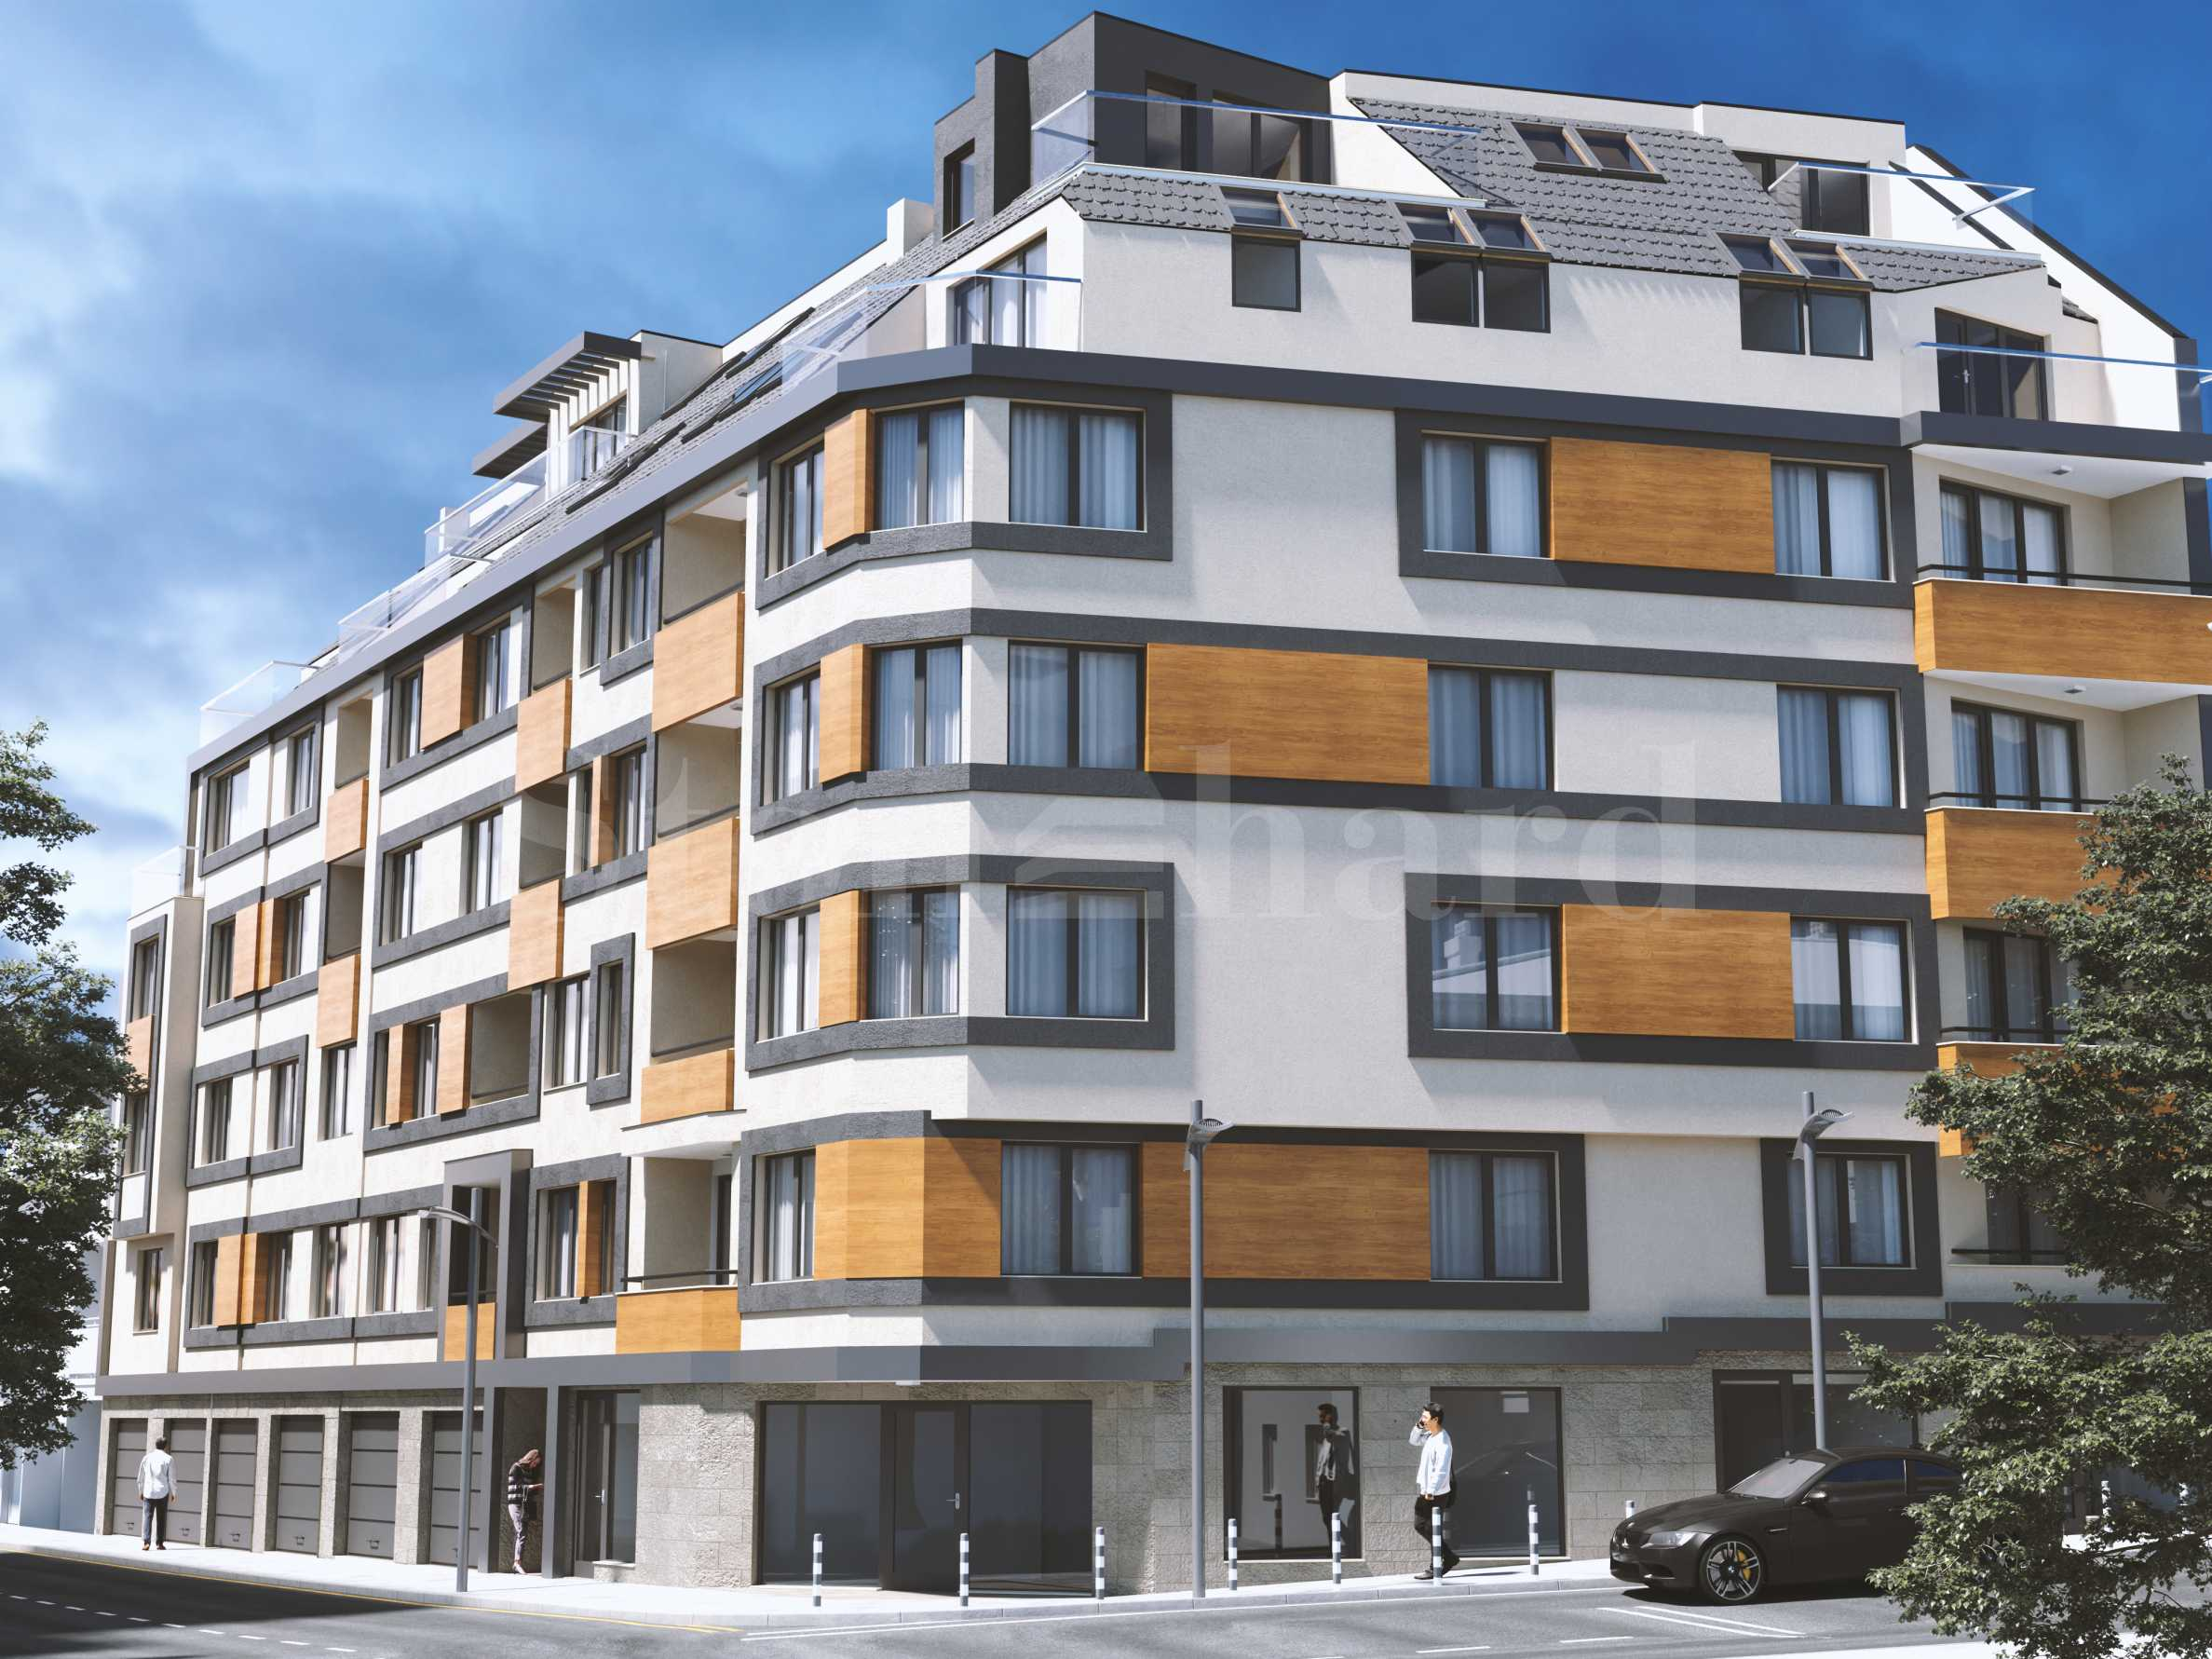 New apartments, garages and parking spaces near the center of Varna1 - Stonehard